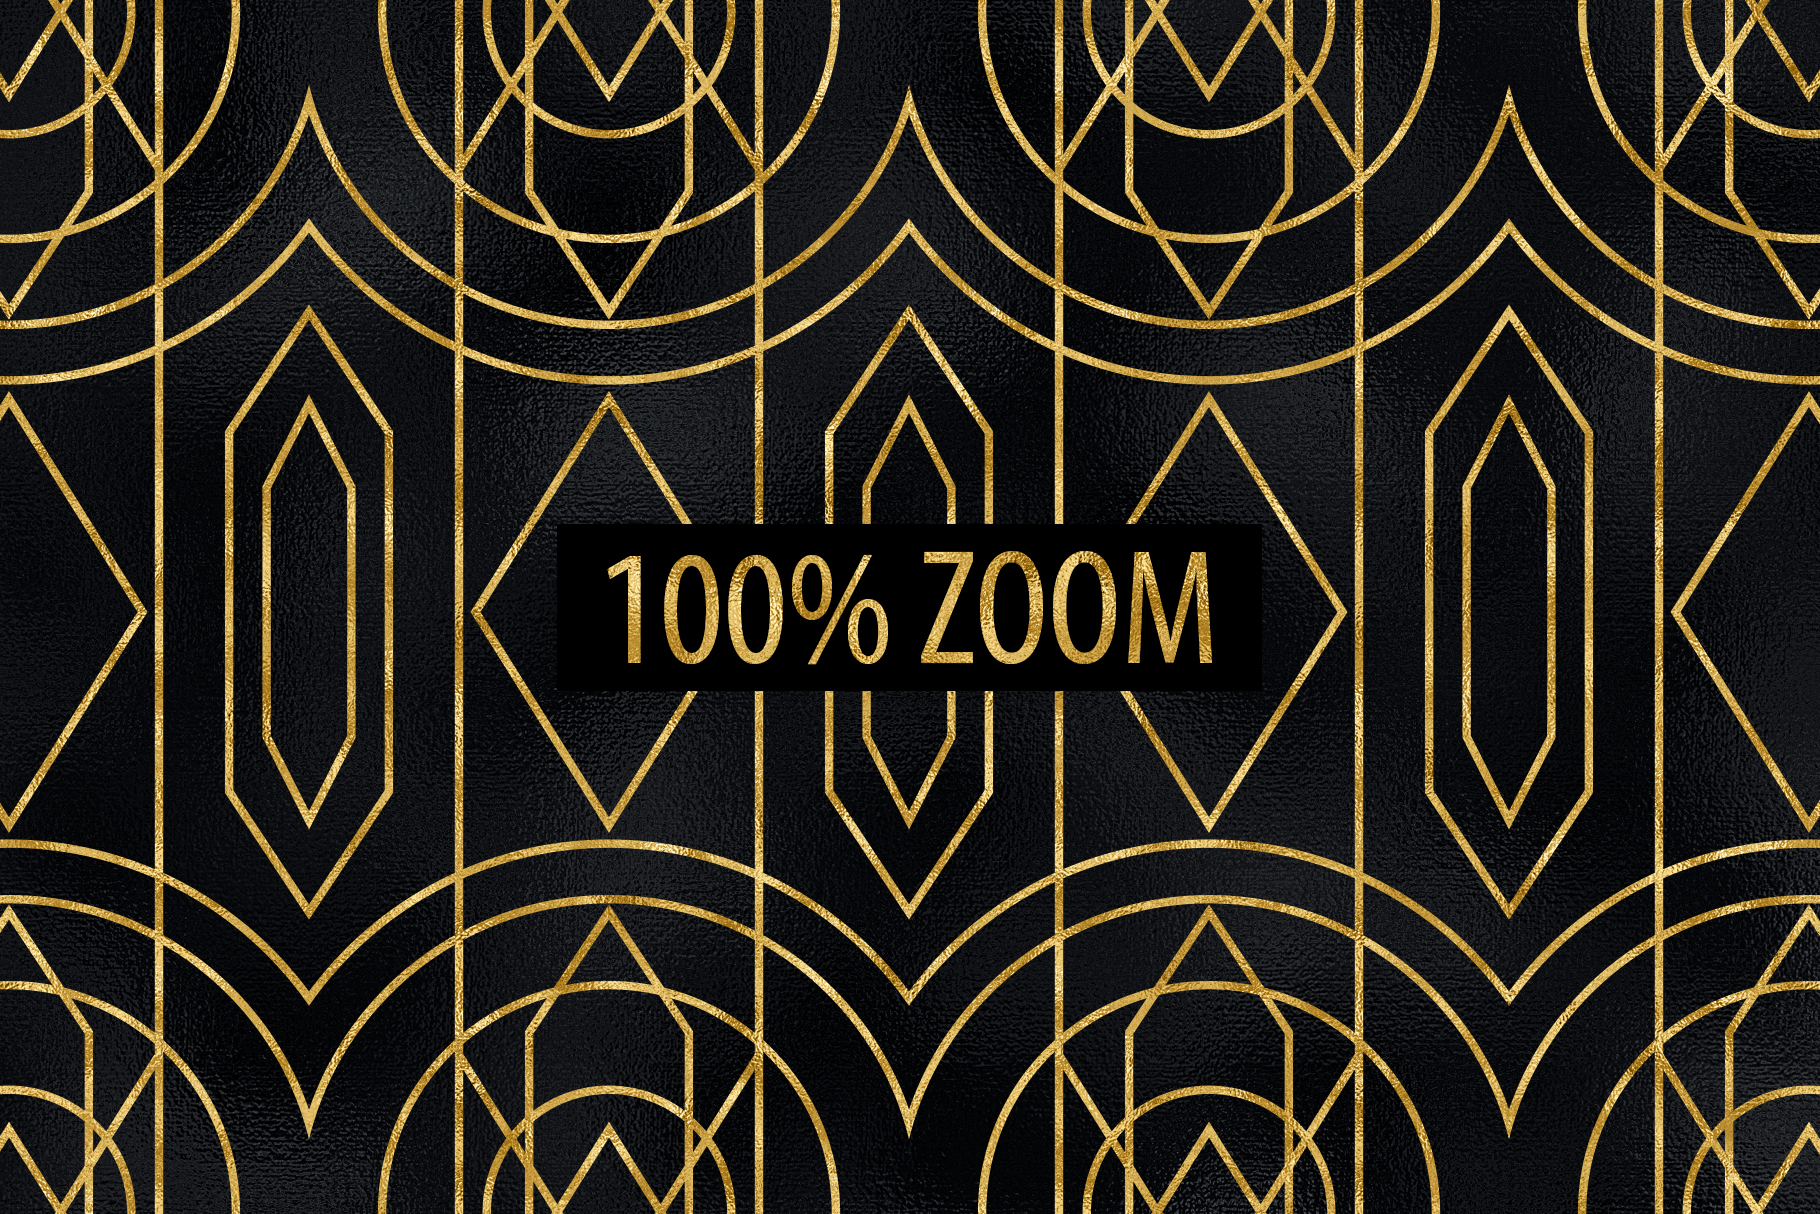 Seamless Art Deco Patterns - Black and Gold Digital Papers example image 16